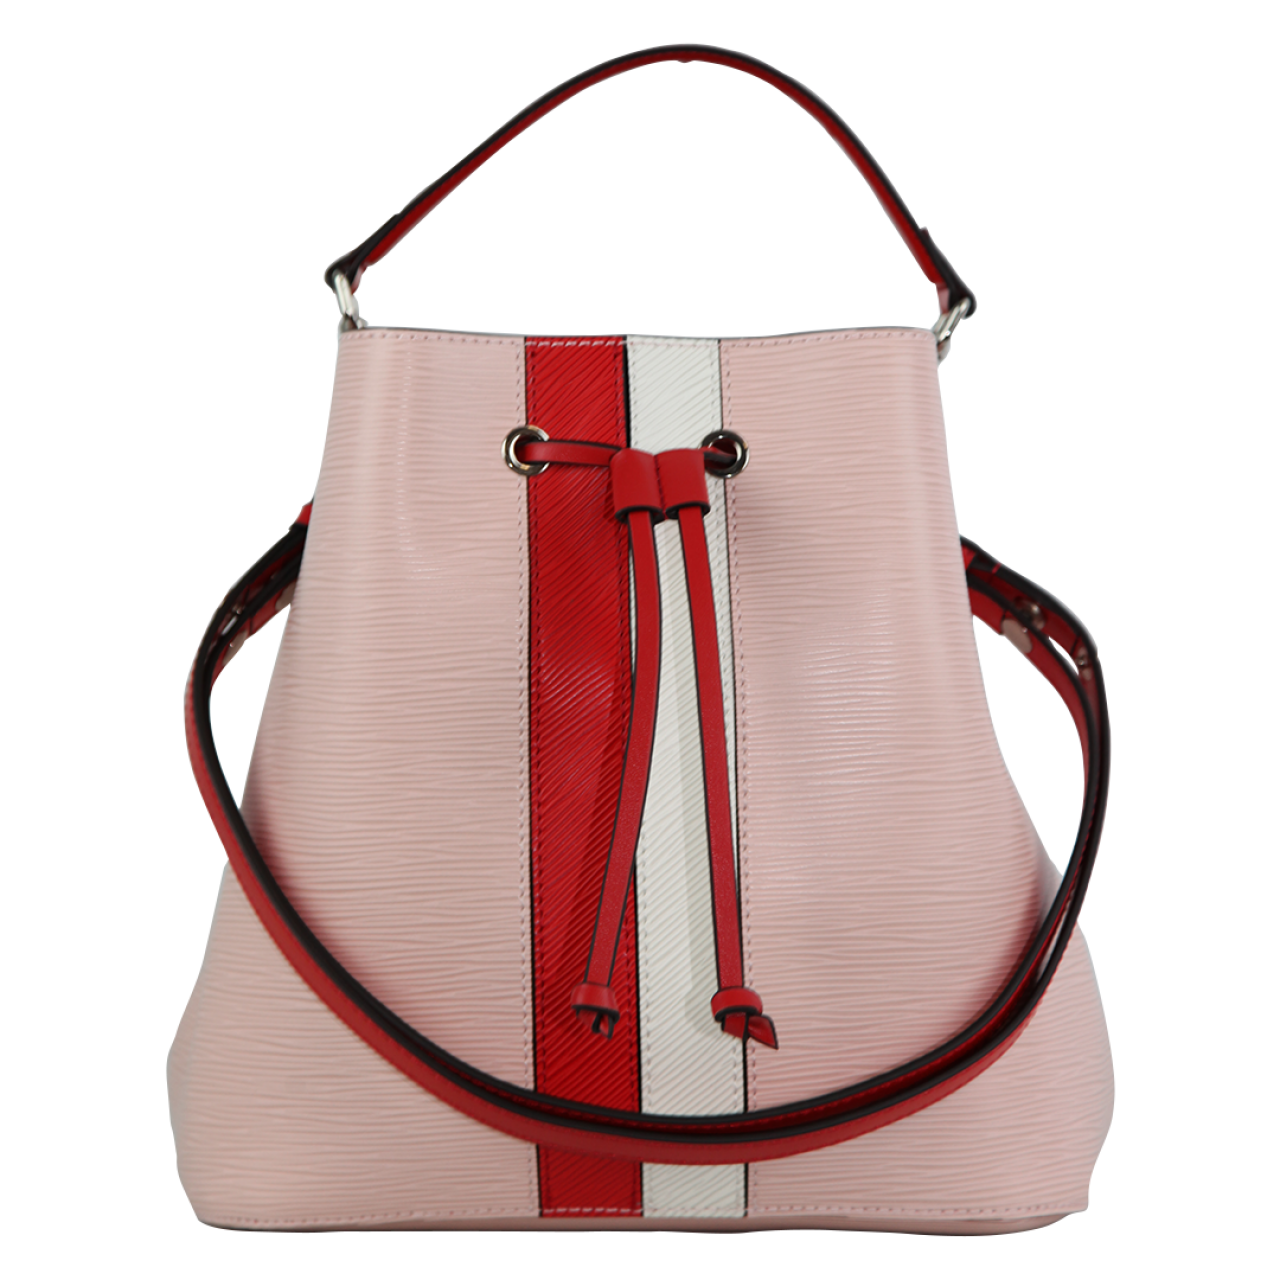 Zeekas Stylish Solid Pink With Red And White Bucket Tote Sling Bag For Women